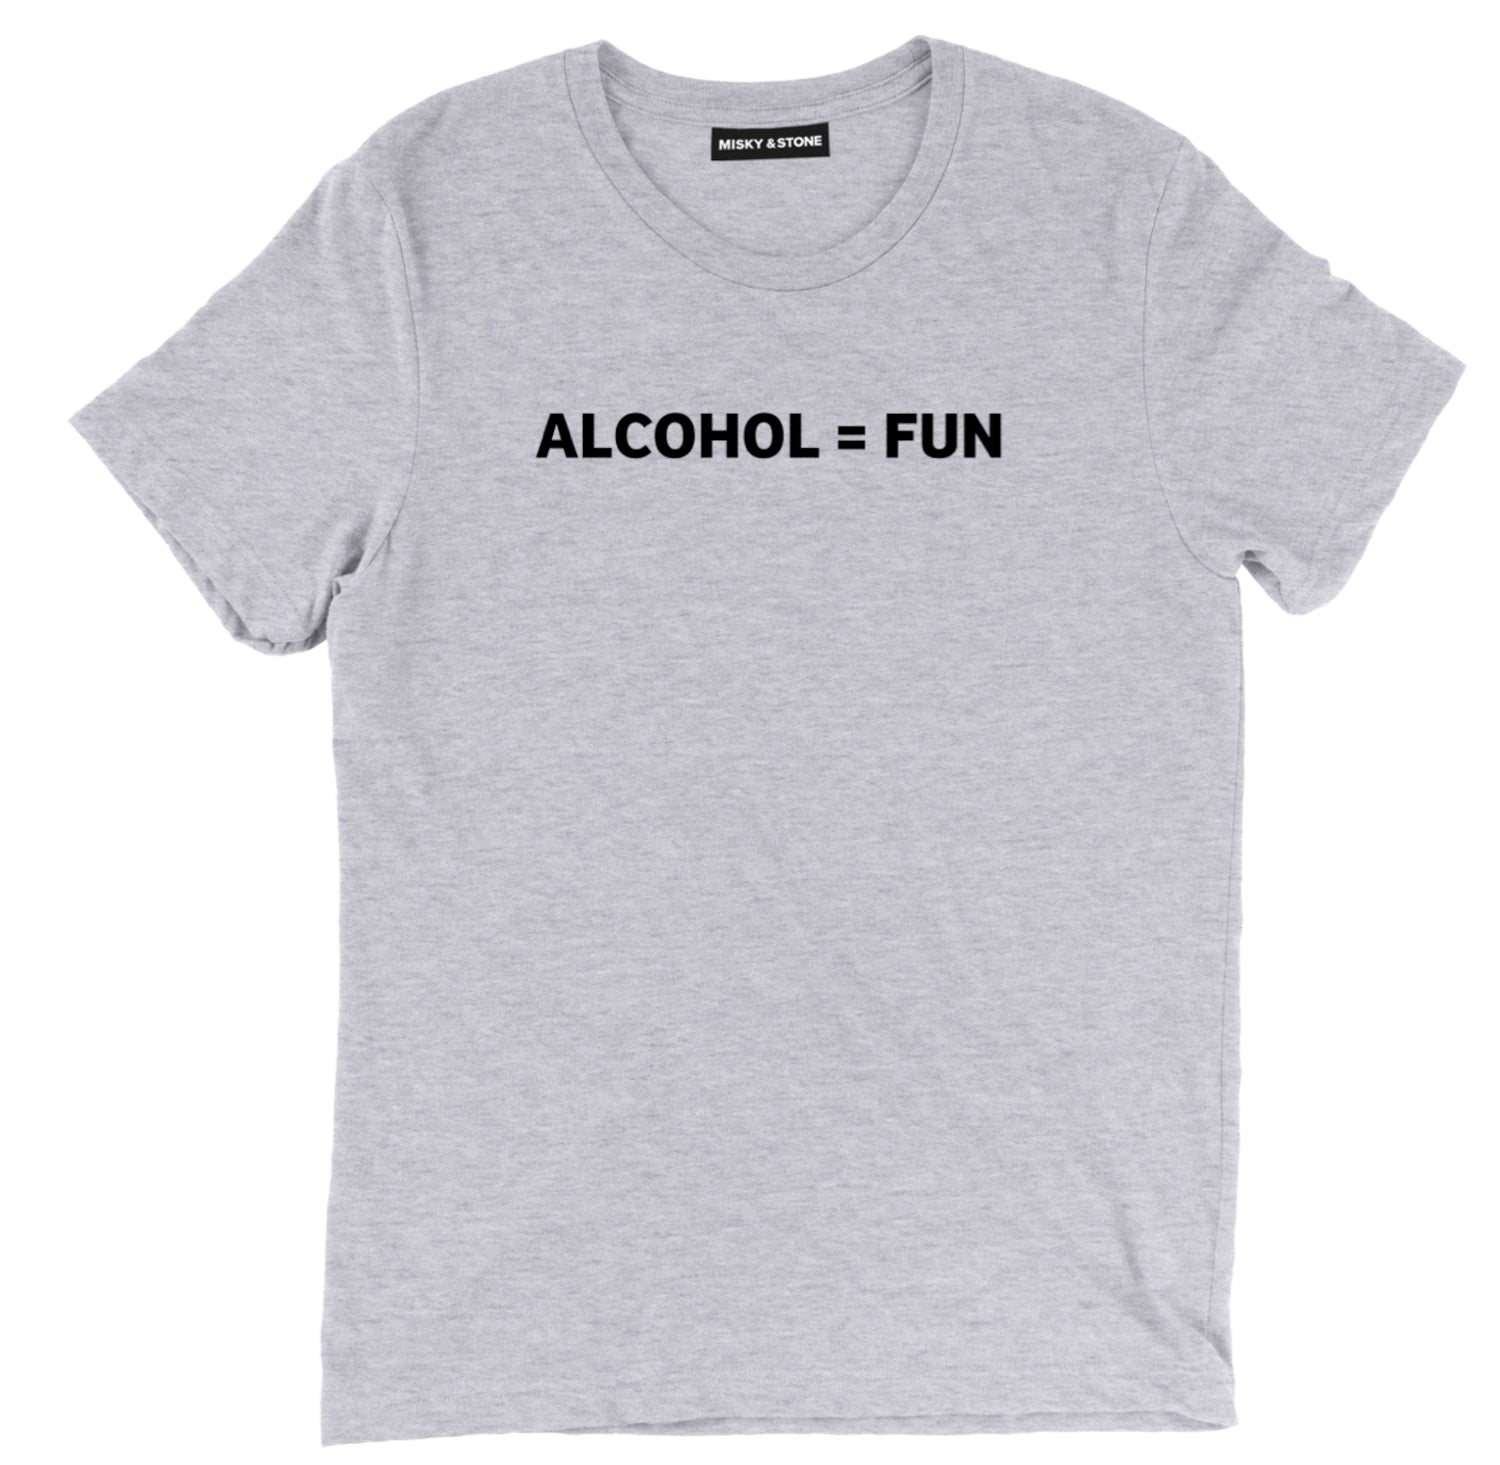 alcohol=fun tee, fun drinking tee, alcohol tee, party drinking shirt, drunk shirts, drunk t shirts, funny drunk shirts, funny beer shirts, funny beer t shirts, drinking shirts, alcohol shirts, alcohol t shirts, funny drinking shirts, beer shirts